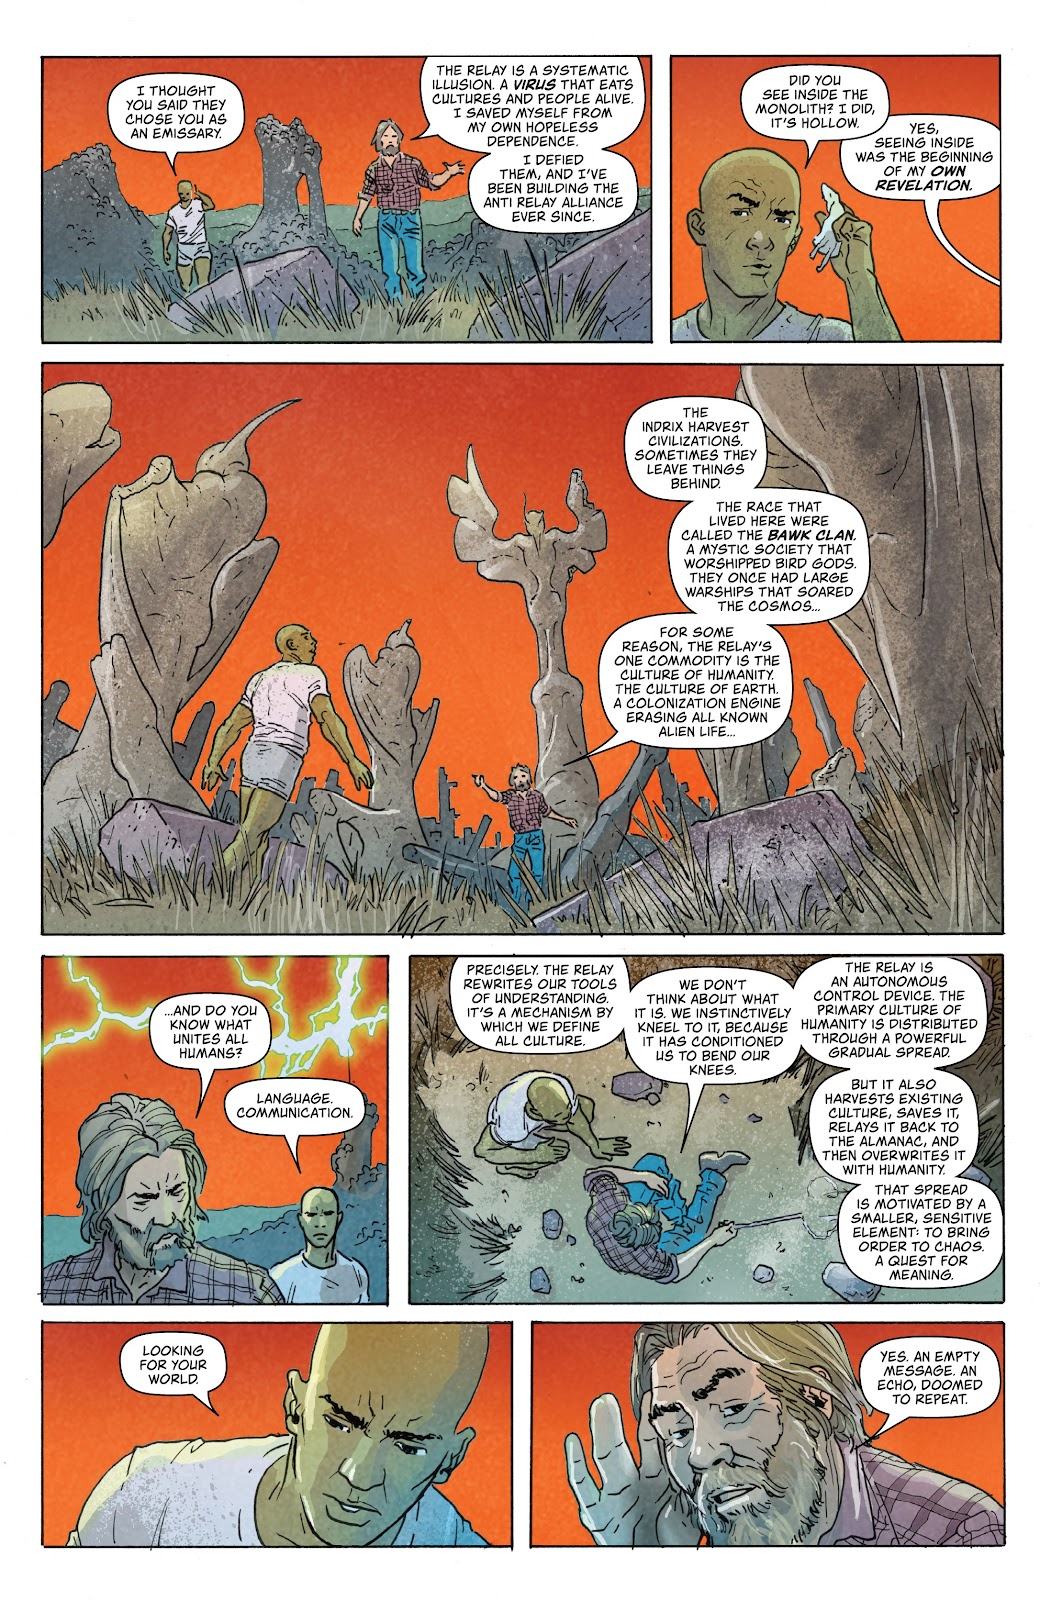 Read online Relay comic -  Issue #5 - 10